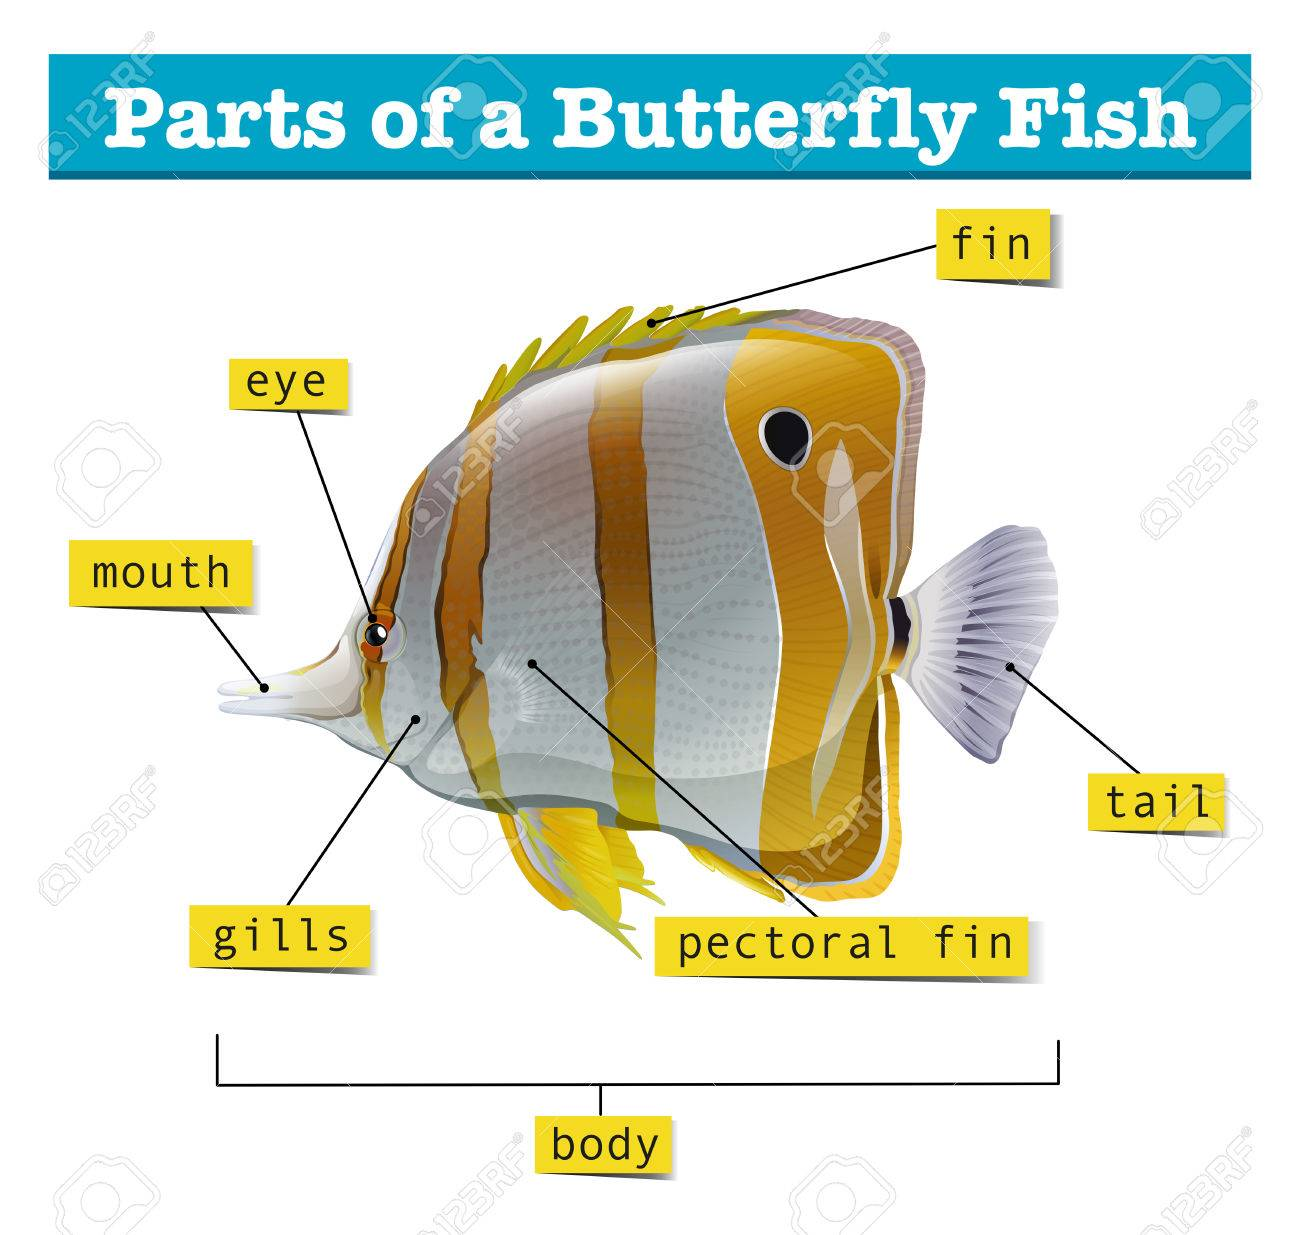 Diagram of different parts of fish illustration royalty free diagram of different parts of fish illustration stock vector 59887242 pooptronica